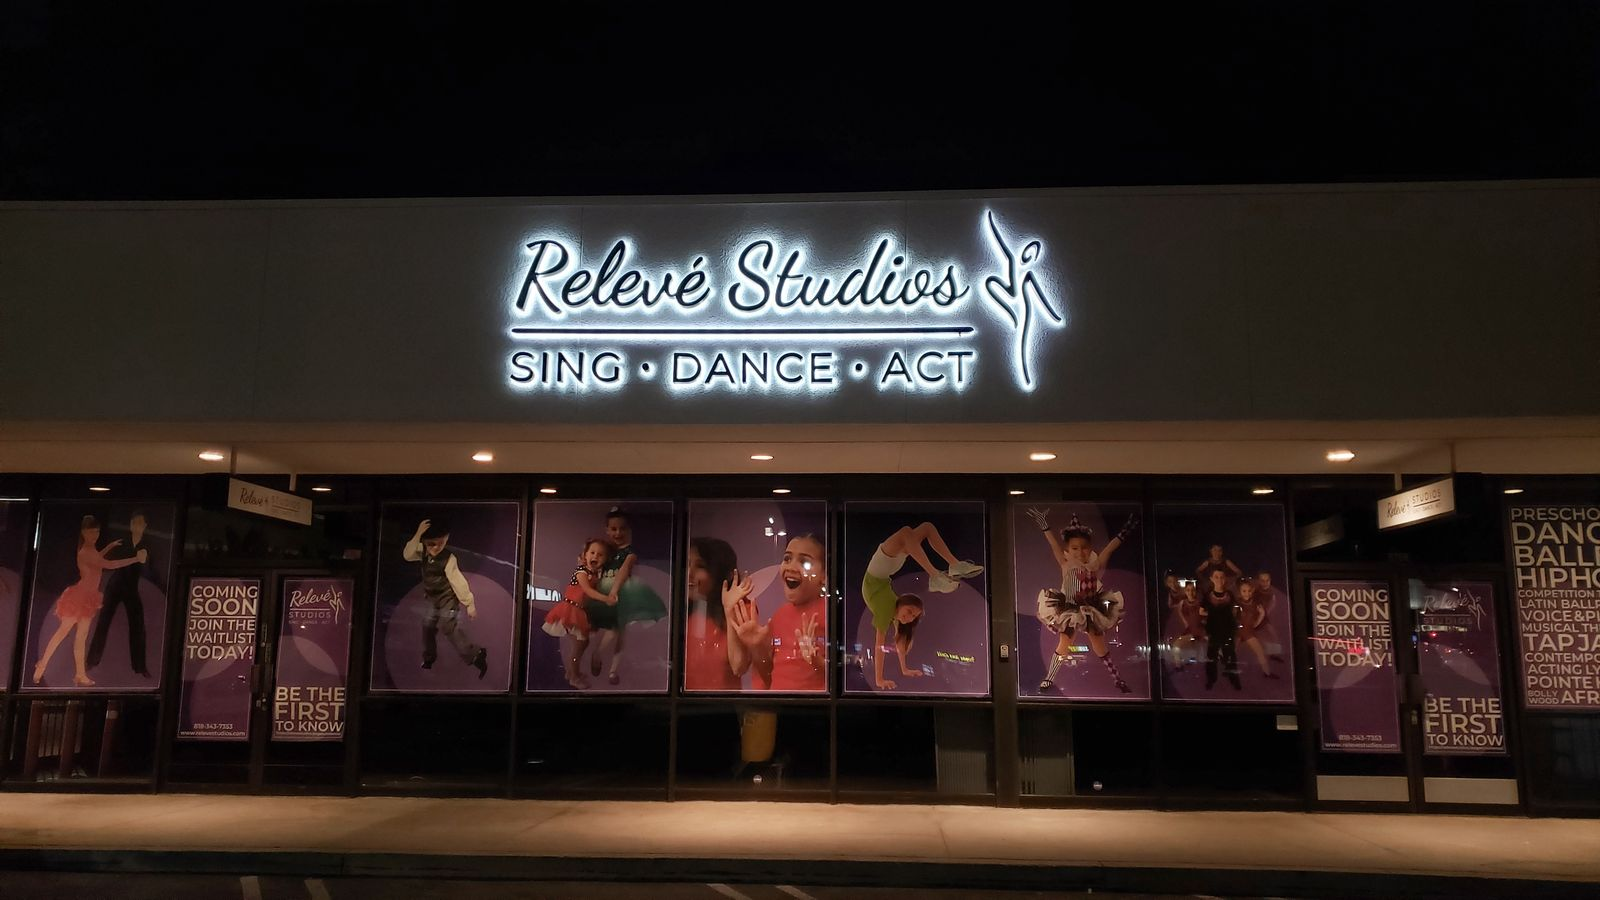 Releve Studios backlit 3d sign with the company name and logo made of aluminum for branding